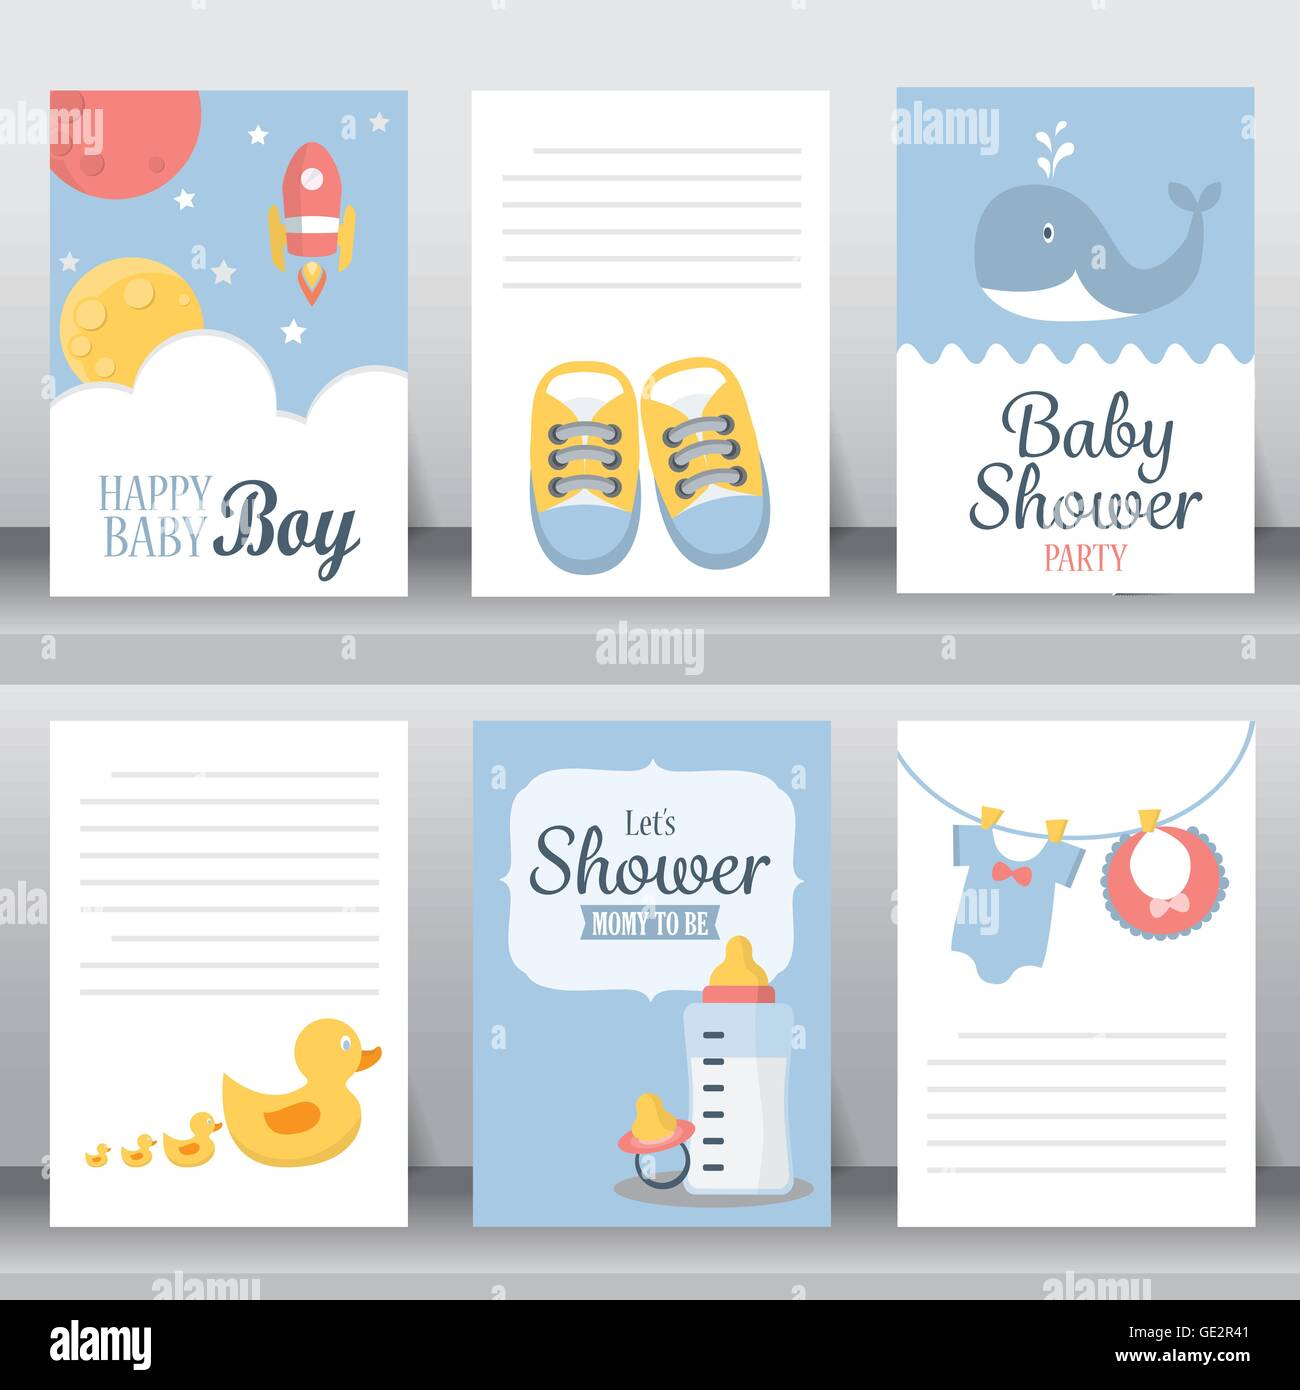 Baby shower party greeting and invitation card layout template in baby shower party greeting and invitation card layout template in a4 size vector illustration stopboris Images